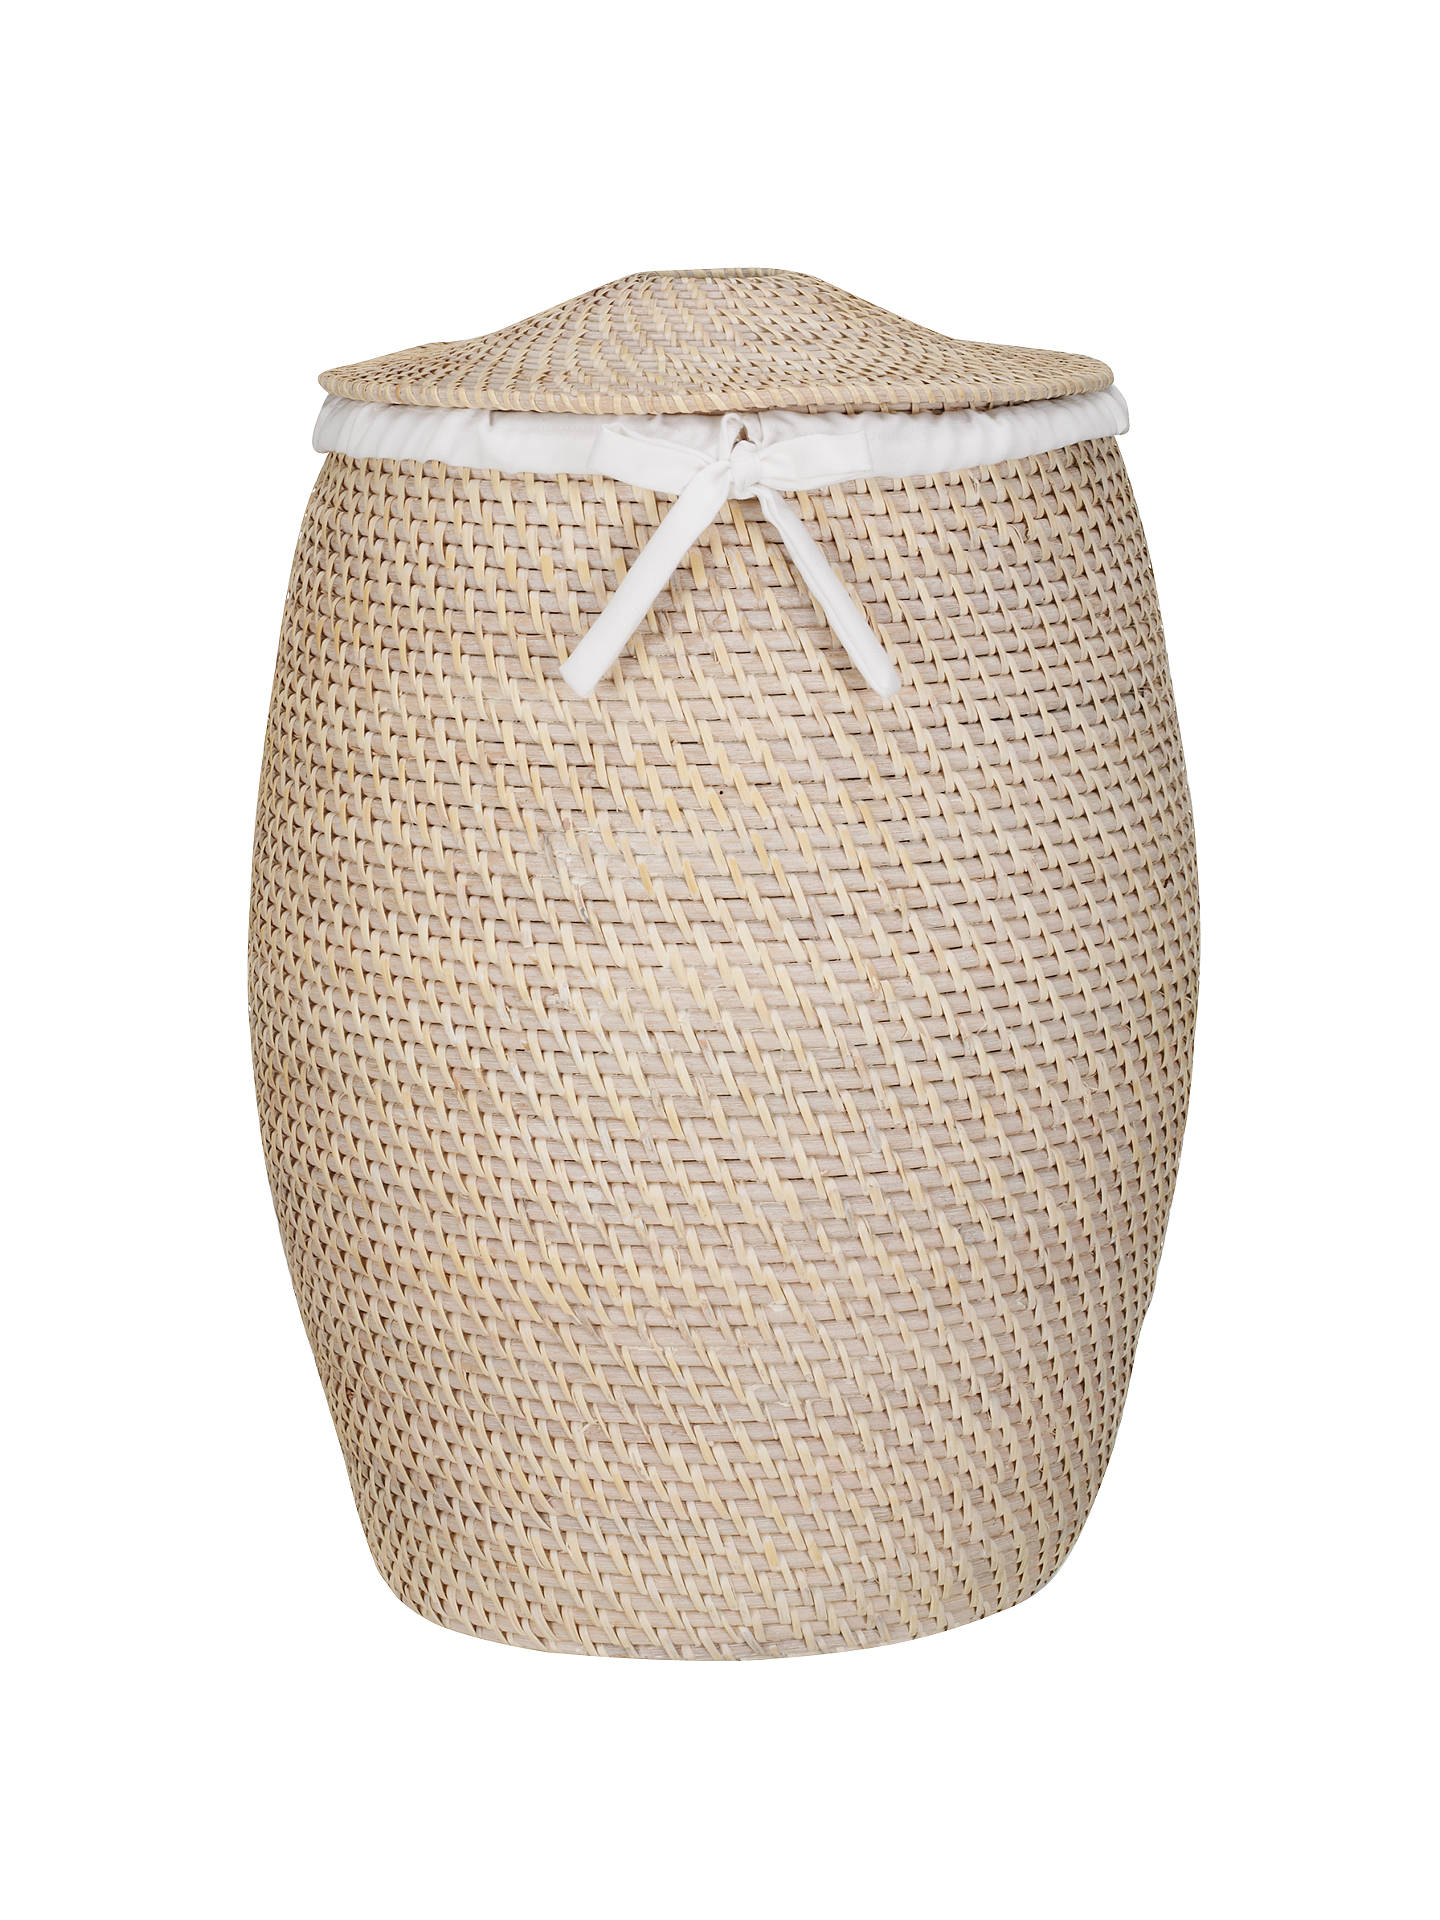 Buy John Lewis & Partners White Rattan Laundry Basket, White Online at johnlewis.com